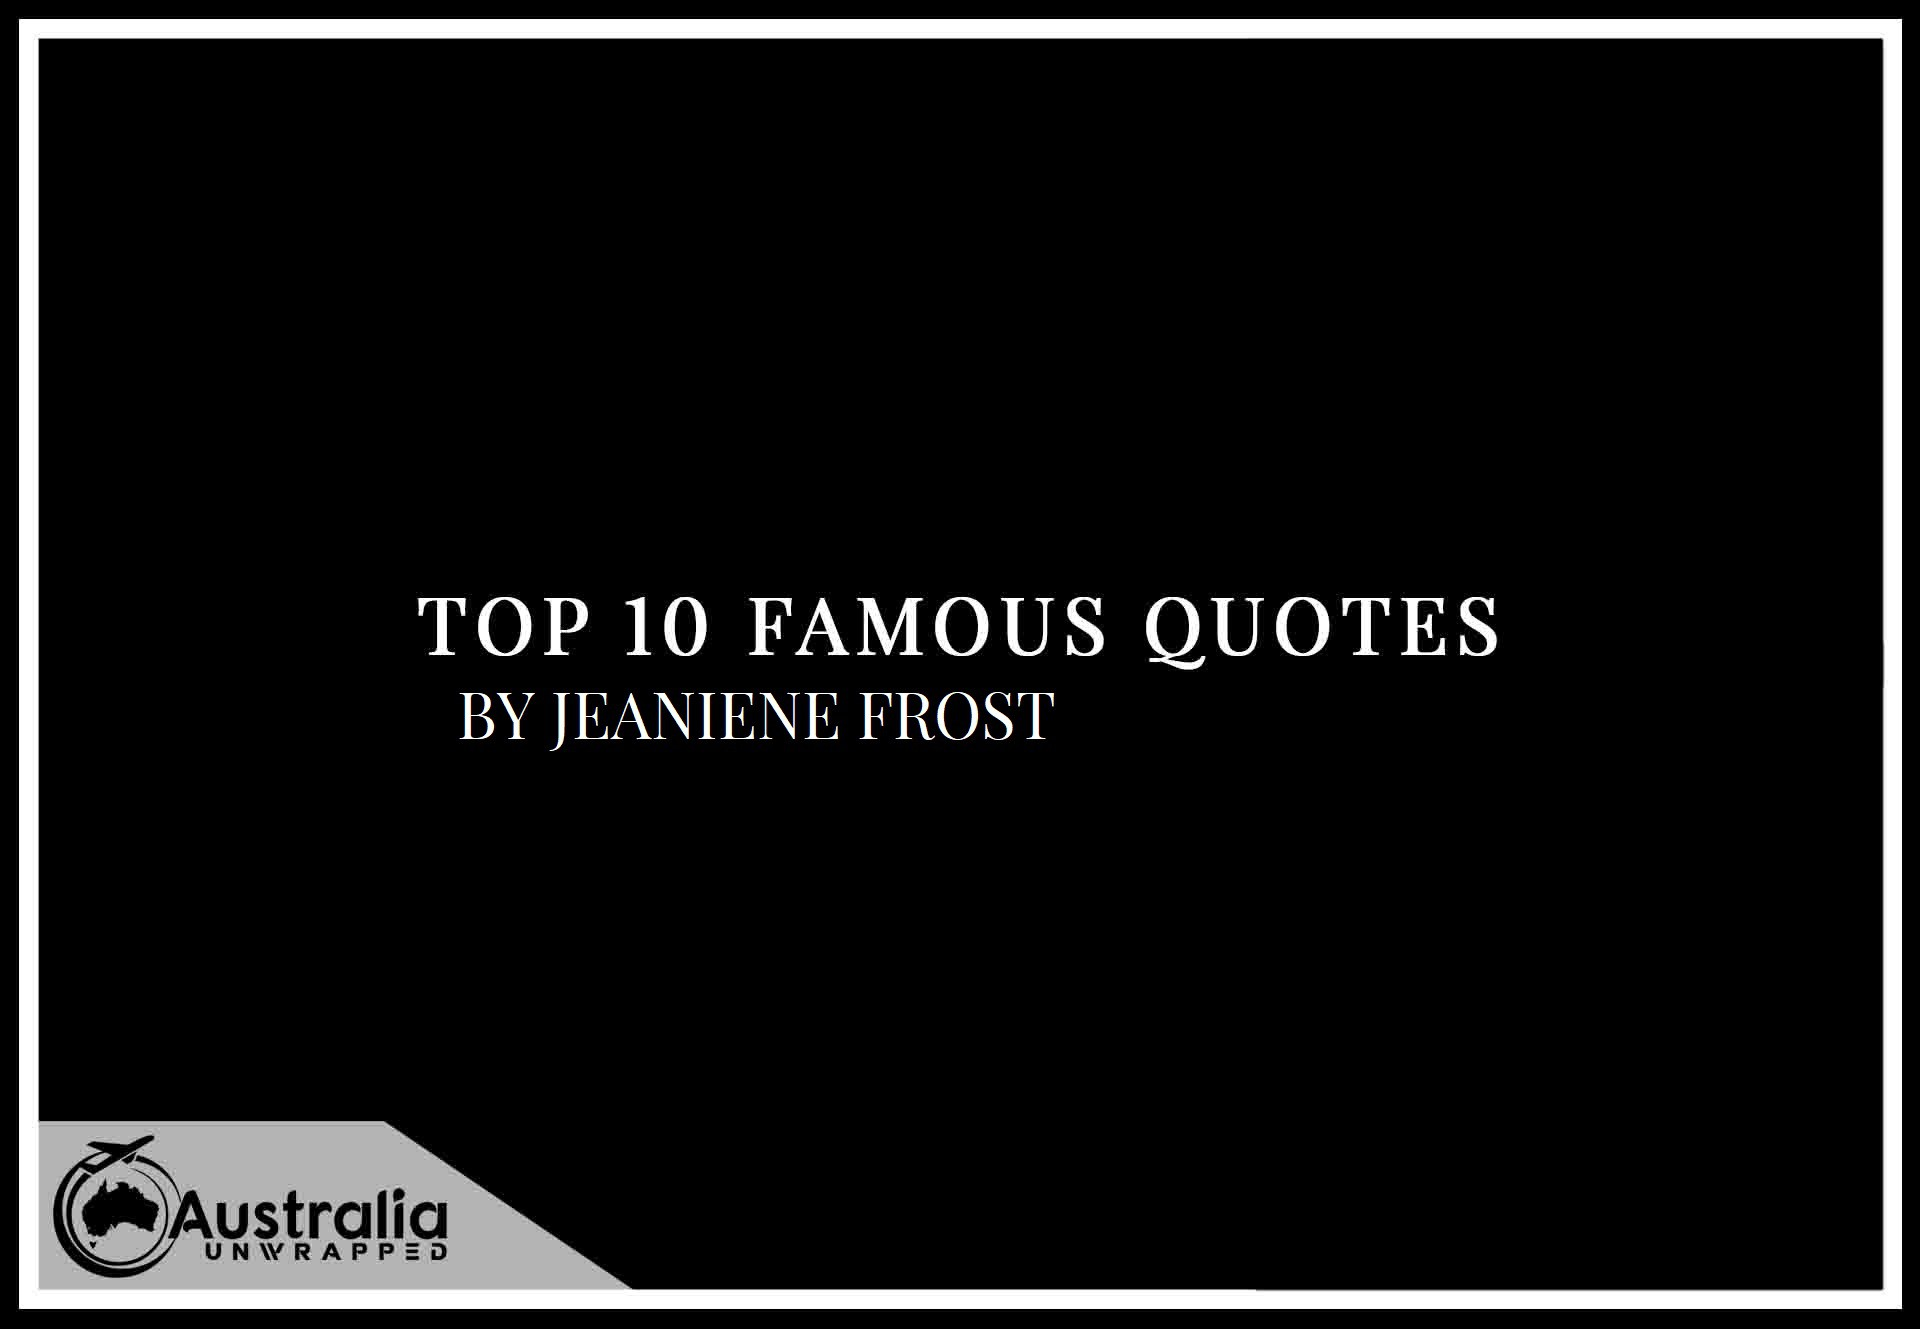 Top 10 Famous Quotes by Author Jeaniene Frost